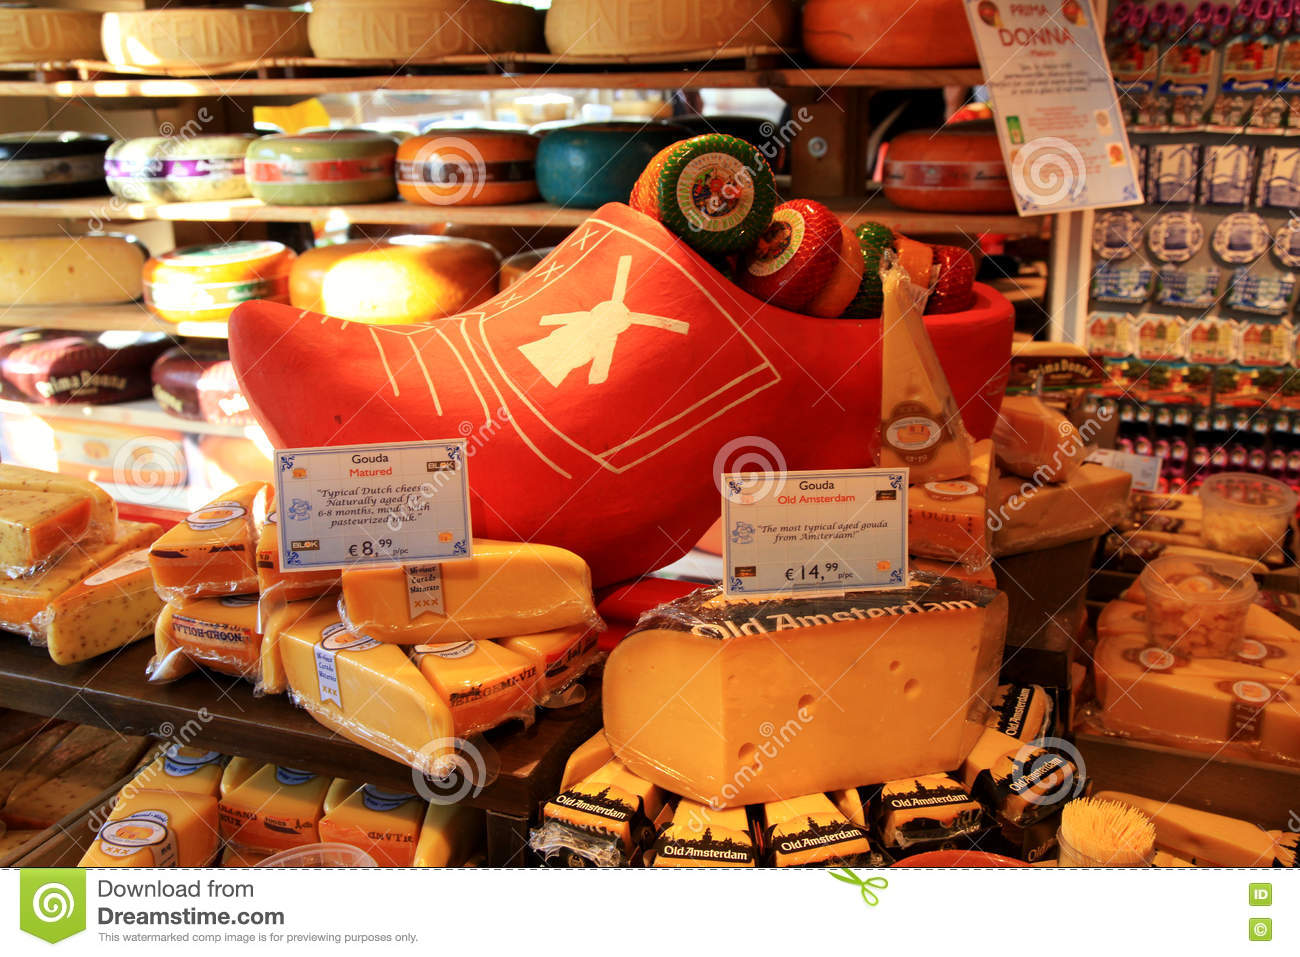 Edam Netherlands Map%0A Display of traditional Dutch cheese  Amsterdam  the Netherlands